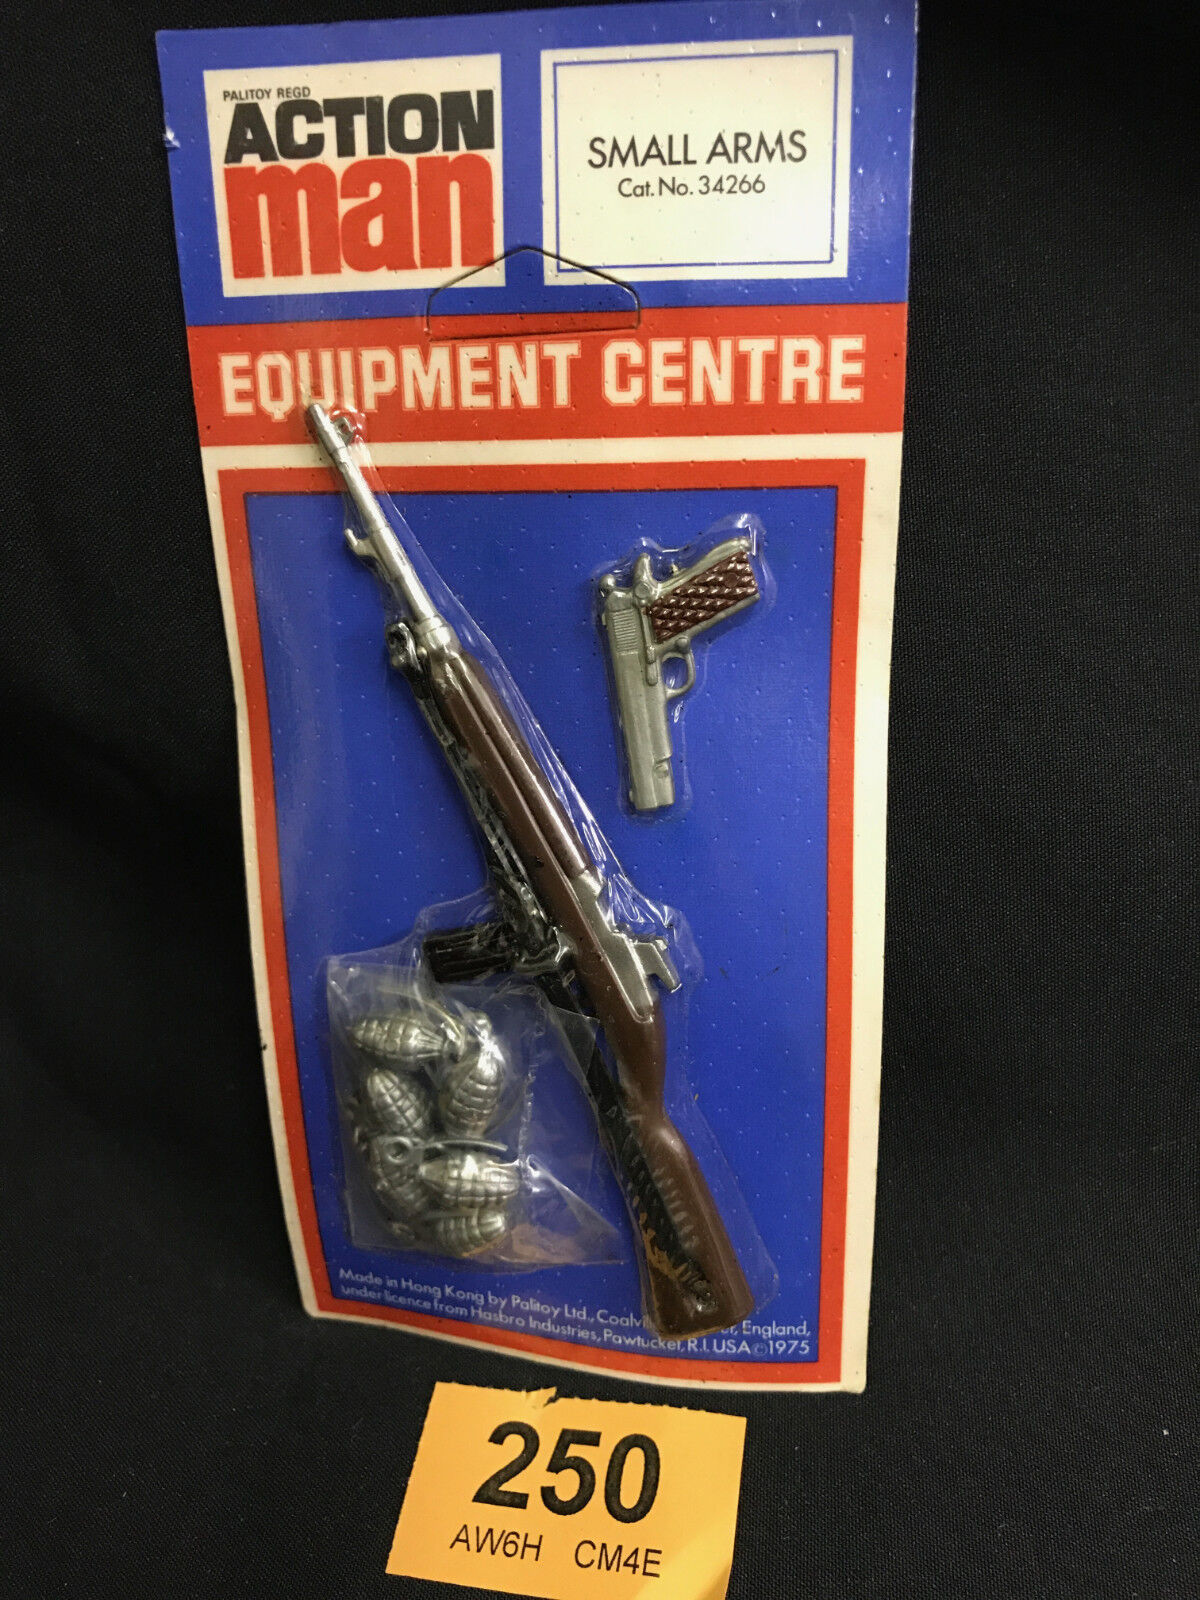 VINTAGE ACTION MAN -  ORIGINAL EQUIPMENT CENTRE SMALL ARMS CARD